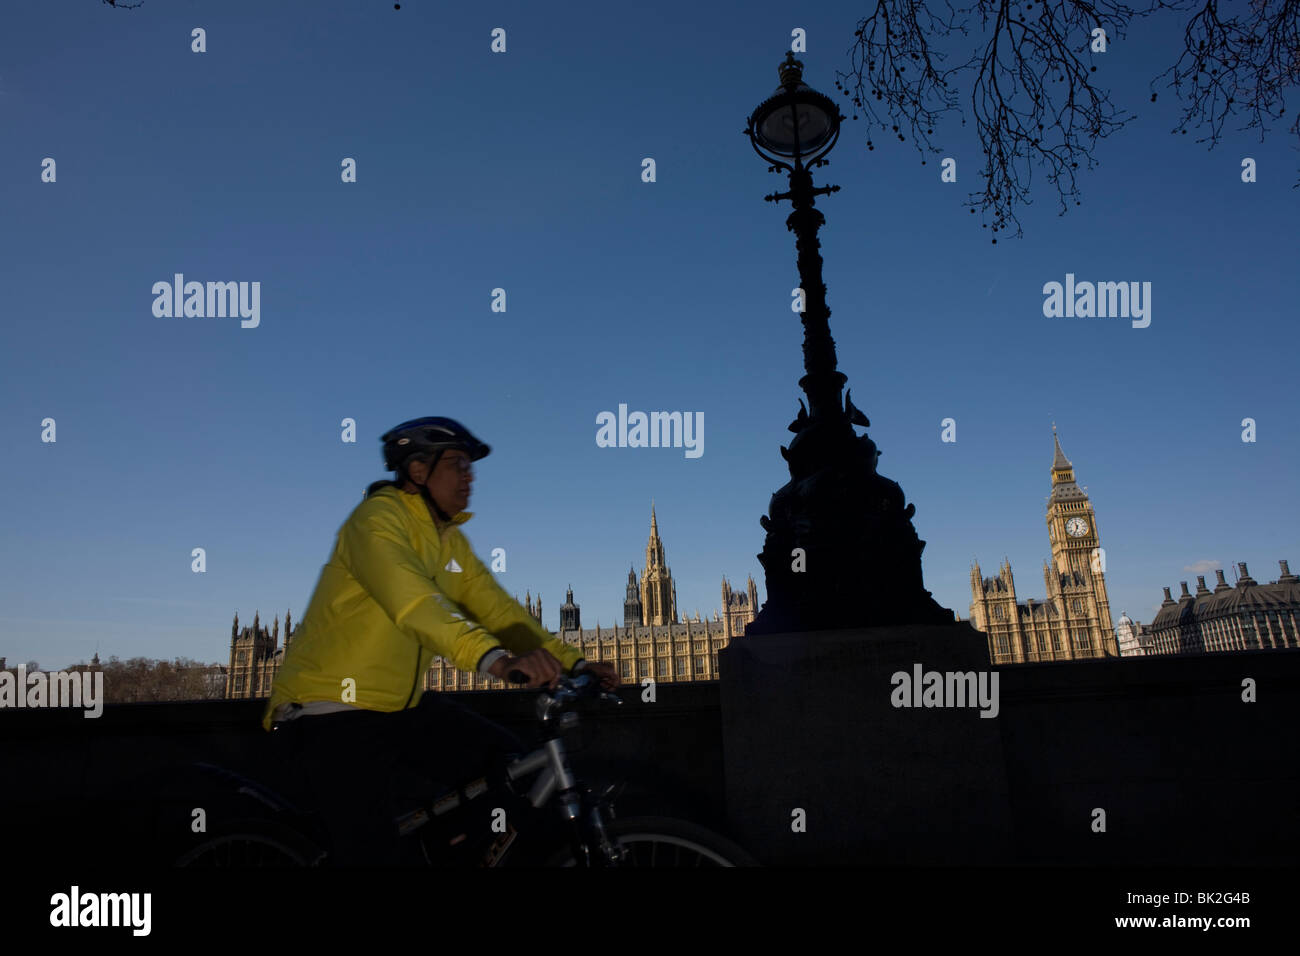 Elizabeth Tower amid the Gothic architecture of Britain's Houses of Parliament and cyclist on the Embankment - Stock Image